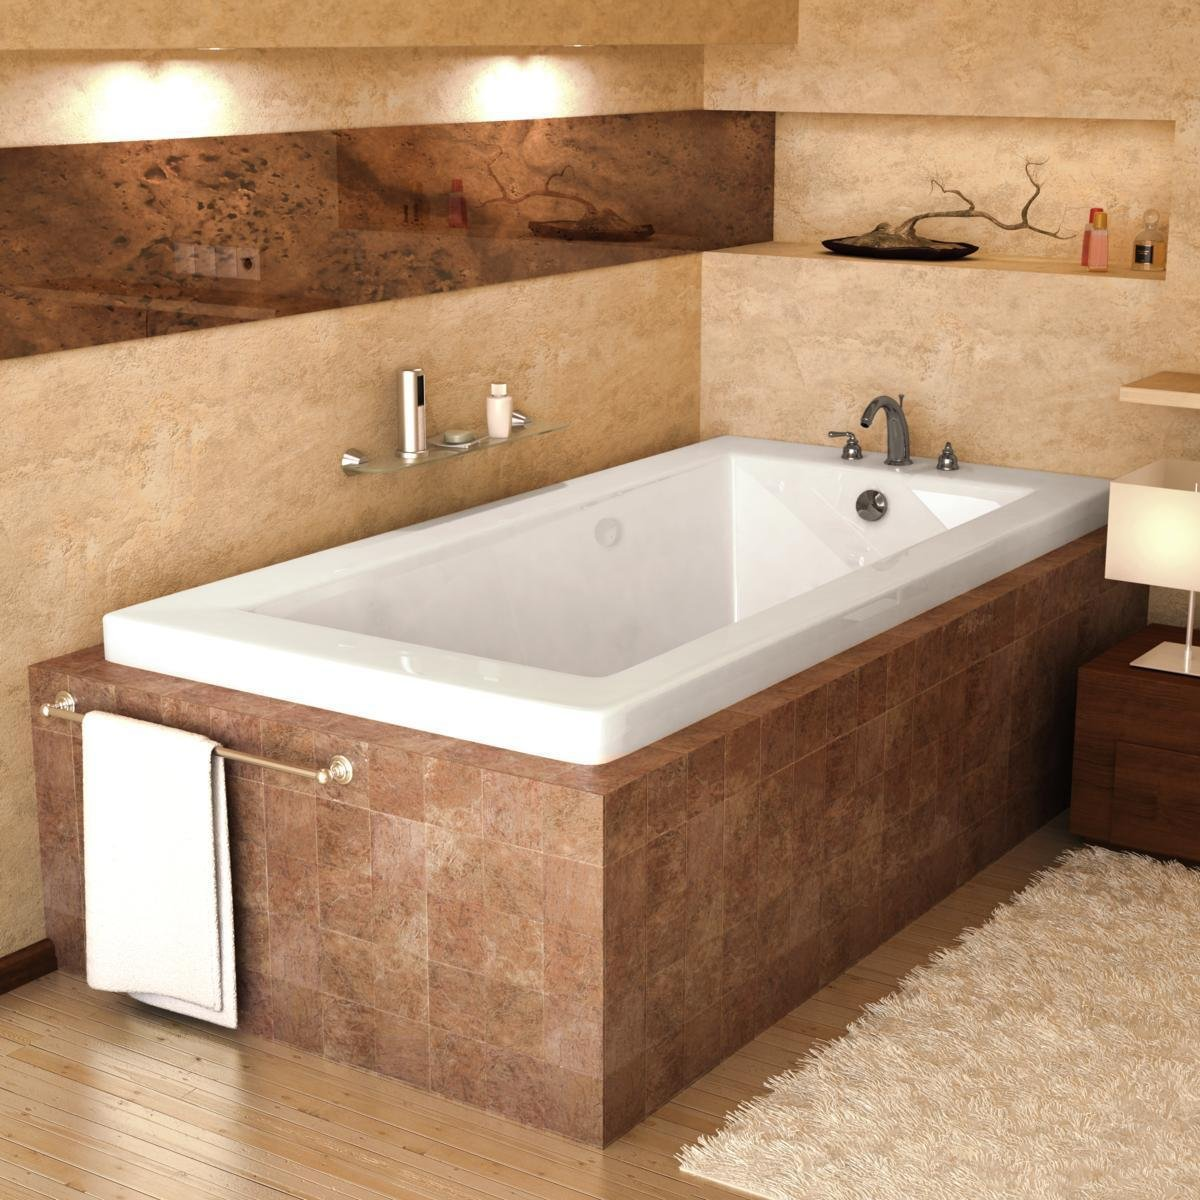 Sea Spa Tubs S3272VN Tubs Venetian 32 by 72 by 23-Inch Rectangular ...